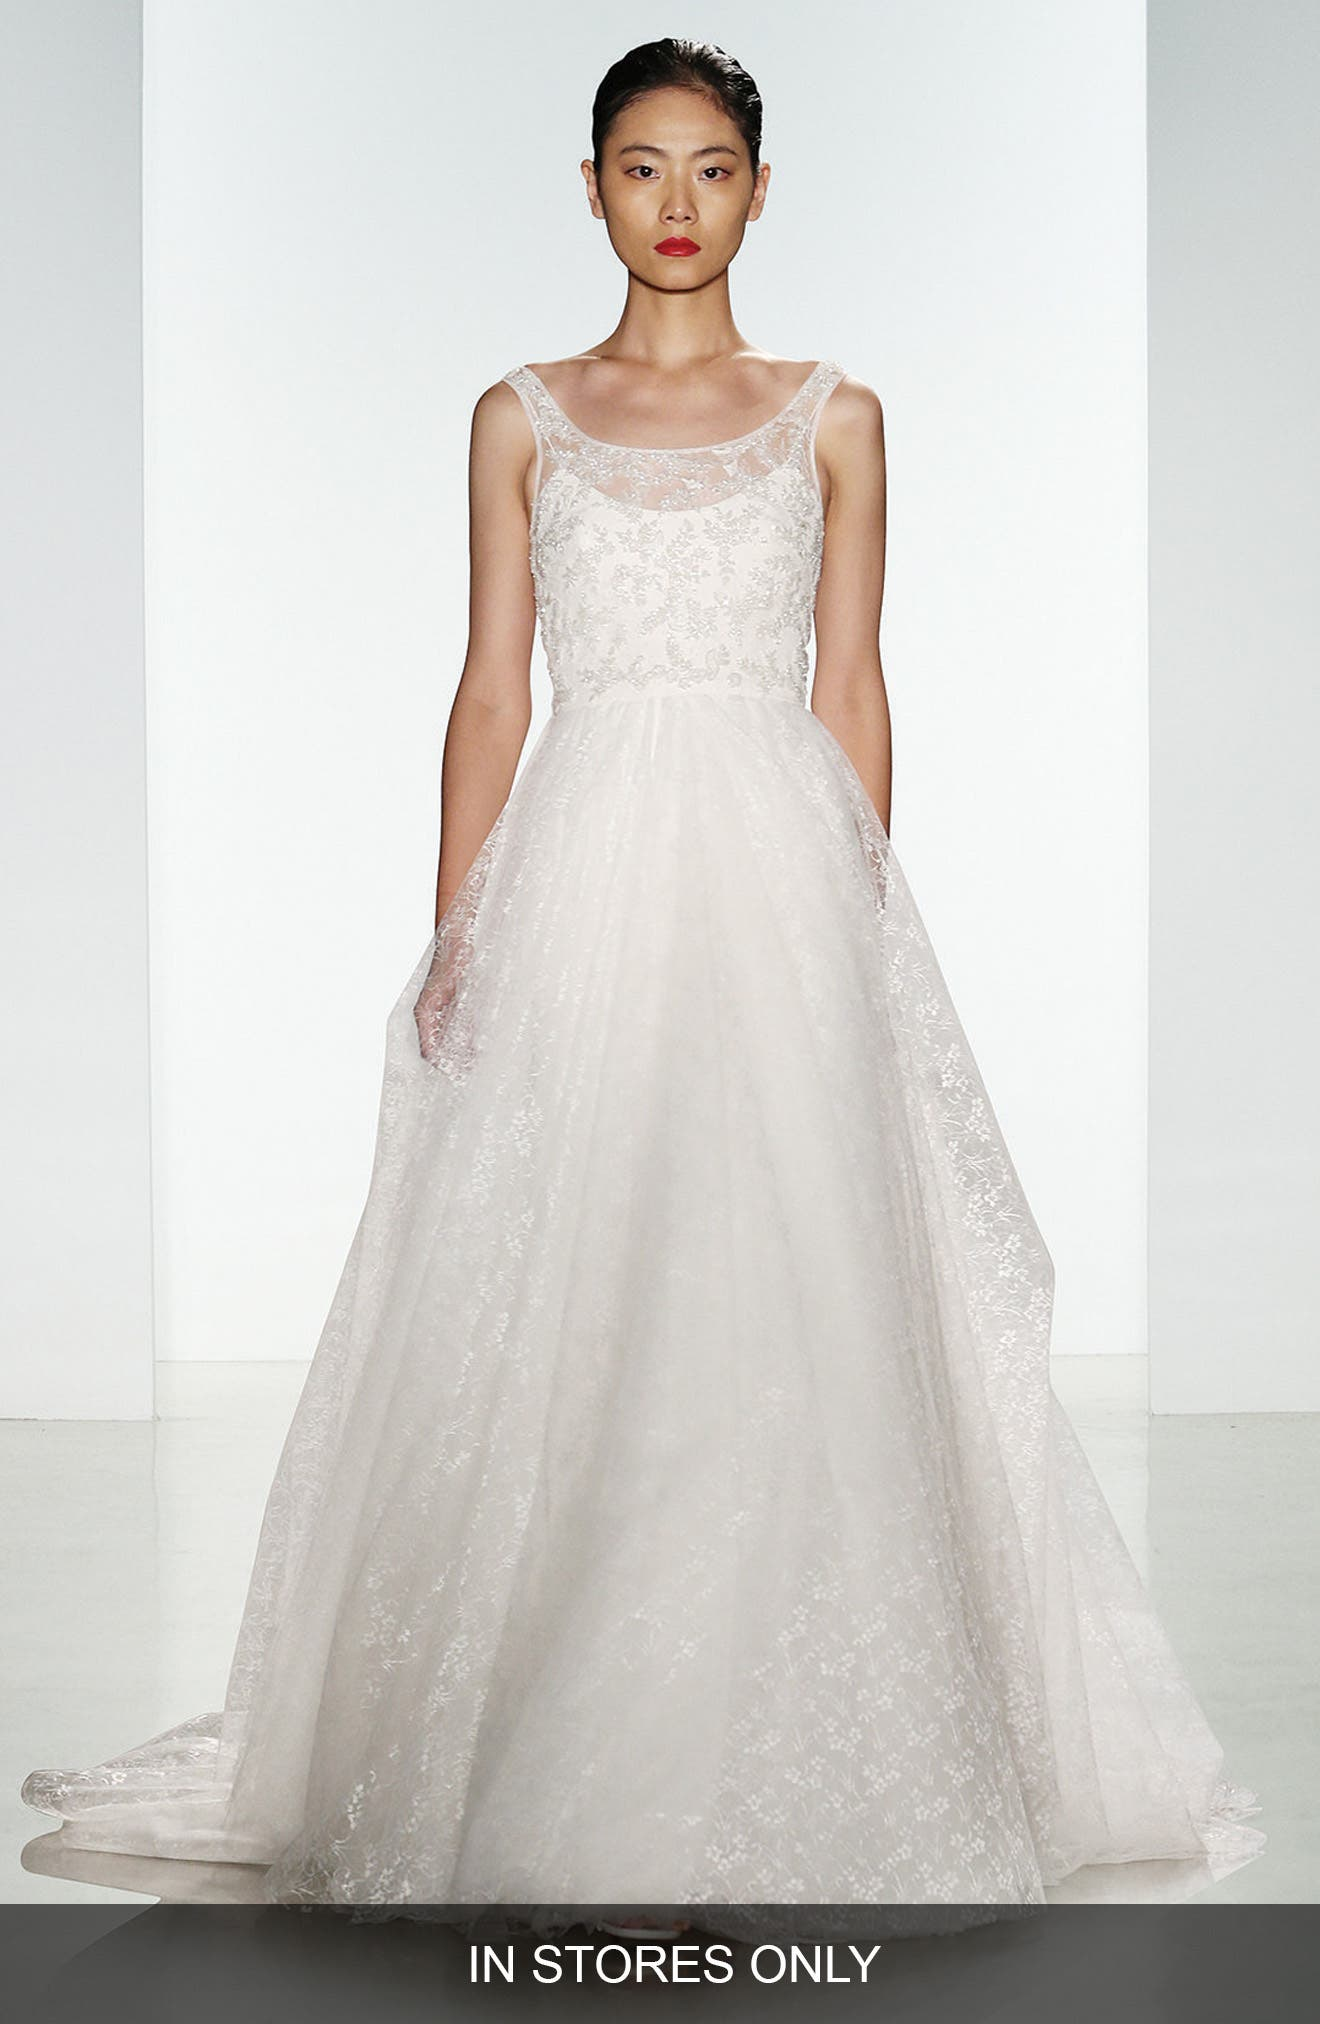 Claire Beaded Chantilly Lace & Floral Tulle Ballgown,                             Alternate thumbnail 2, color,                             900